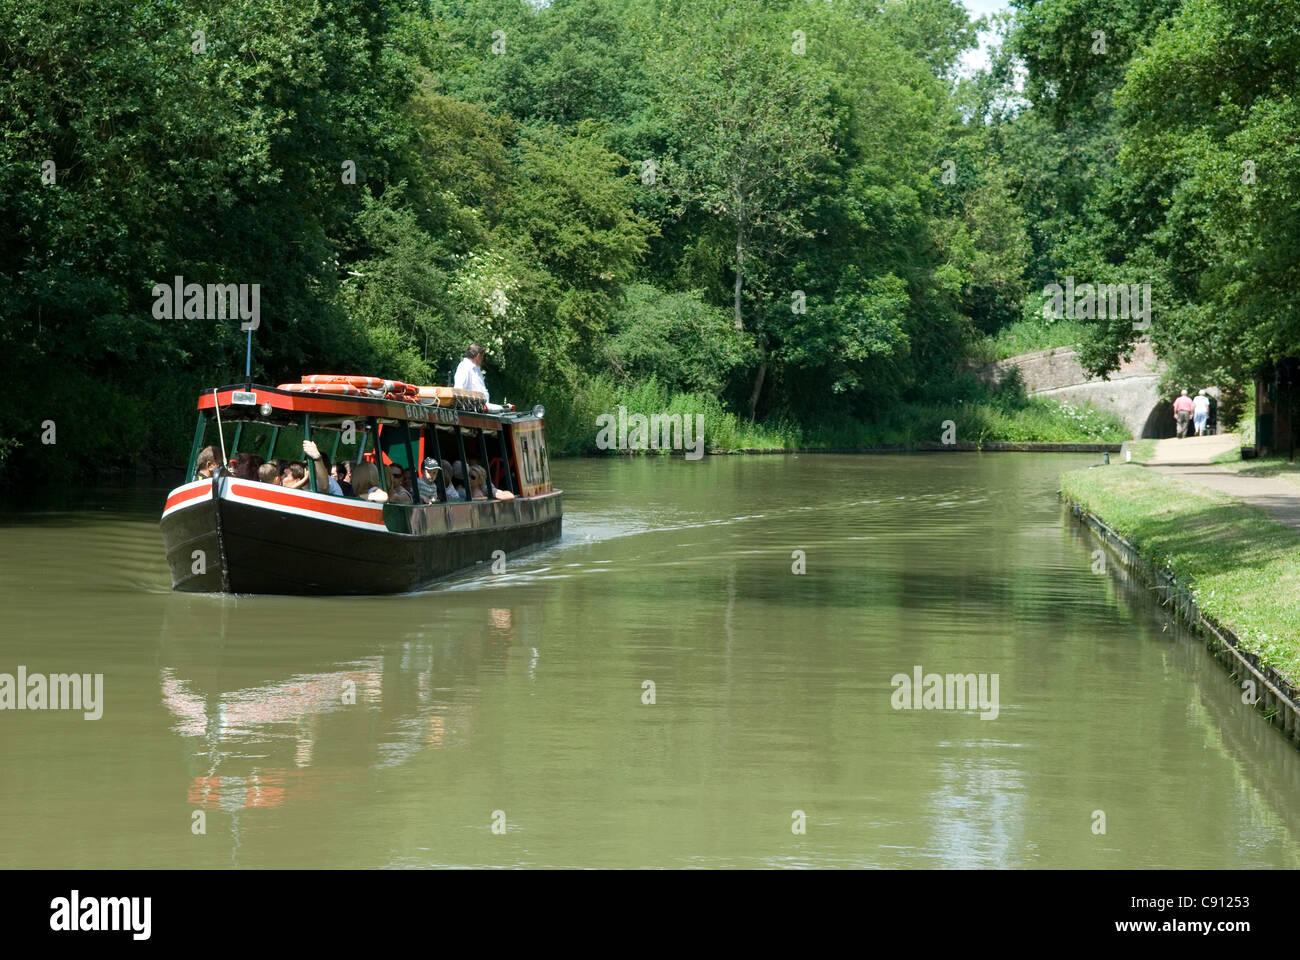 Near Stoke Bruerne on the Grand Union Canal there is Blisworth Tunnel which is the third longest canal tunnel on - Stock Image